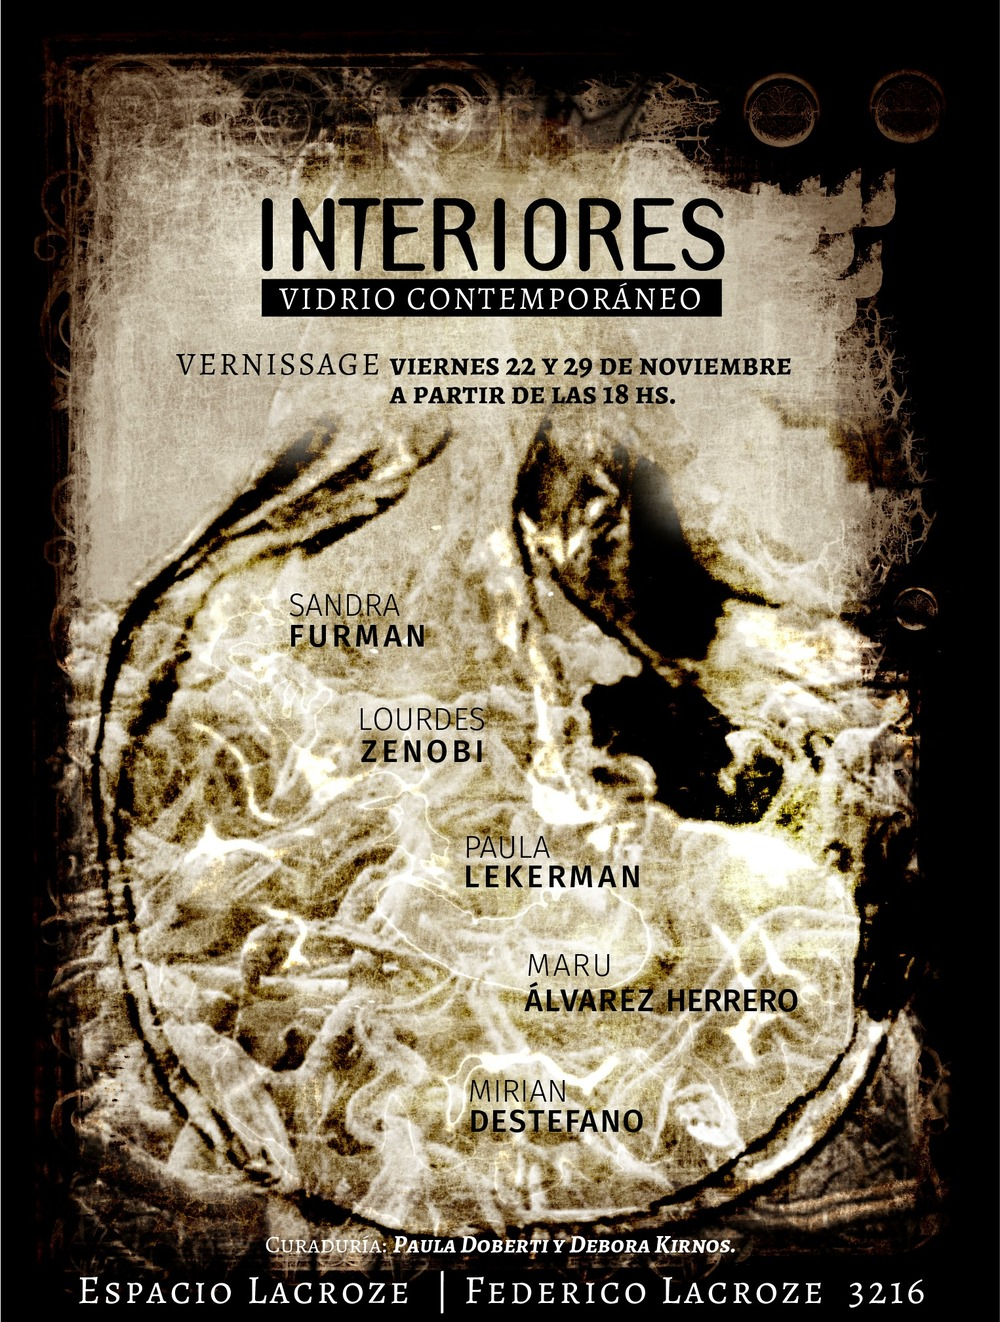 Interiores Vidrio Contemporaneo